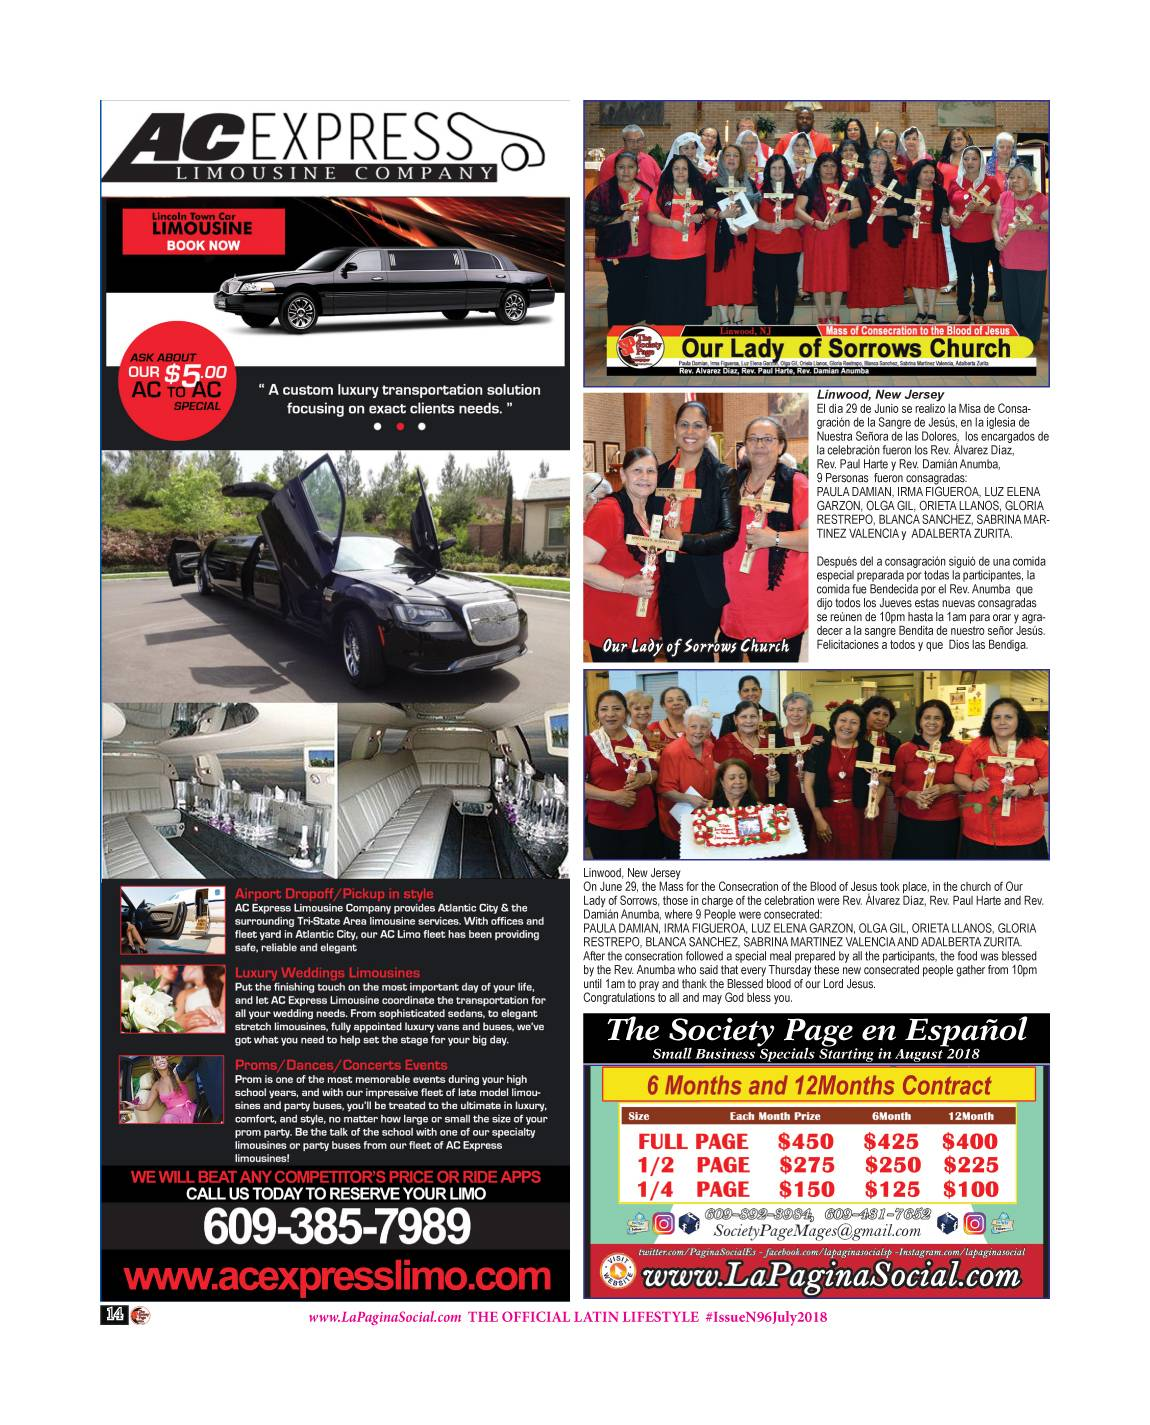 18 The Society Page en Espanol Issue N96 July 2018